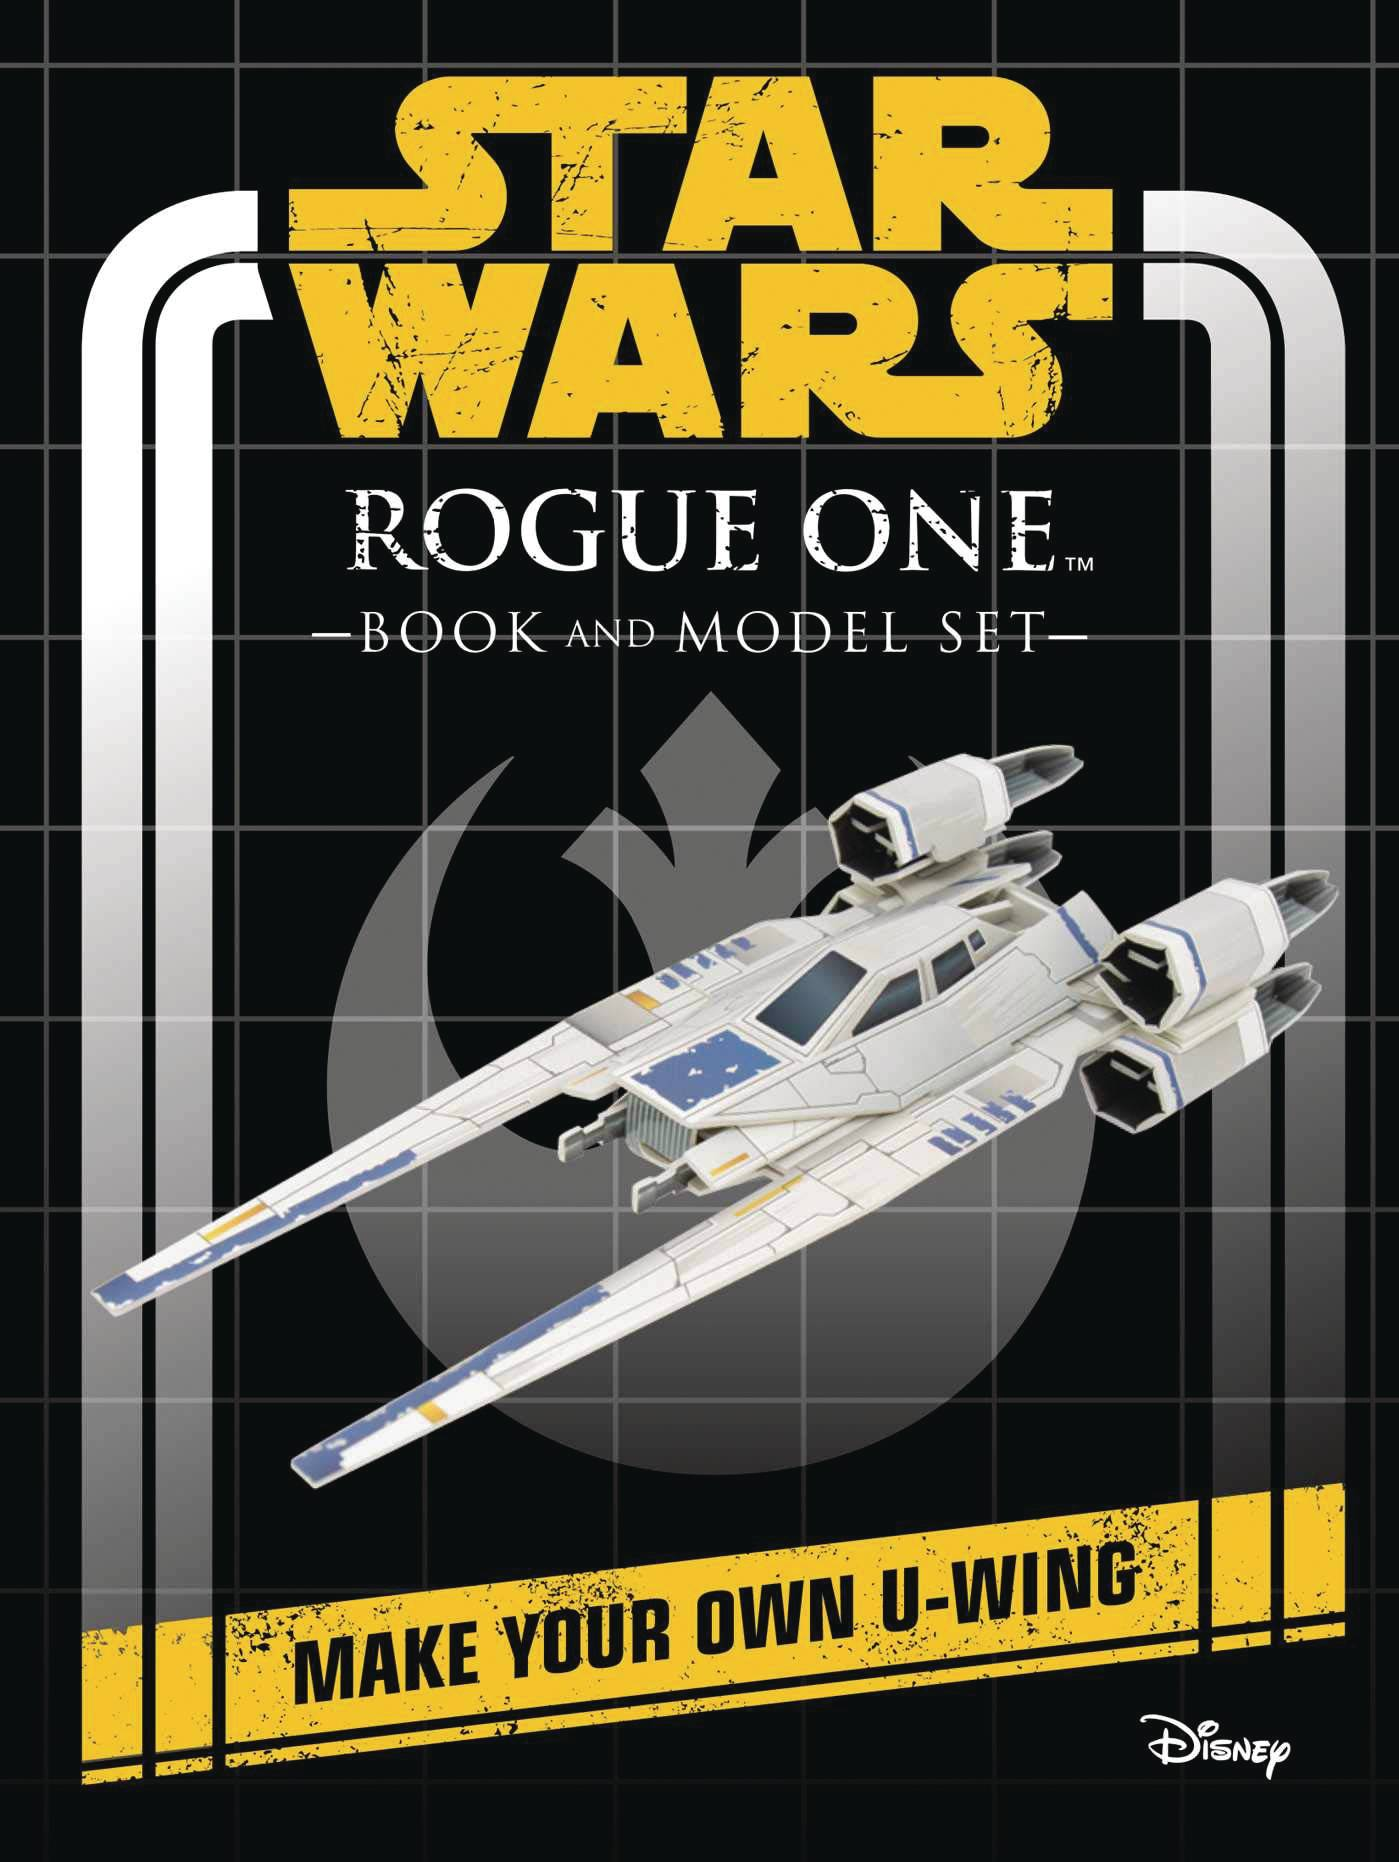 STAR WARS ROGUE ONE BOOK & MODEL HC